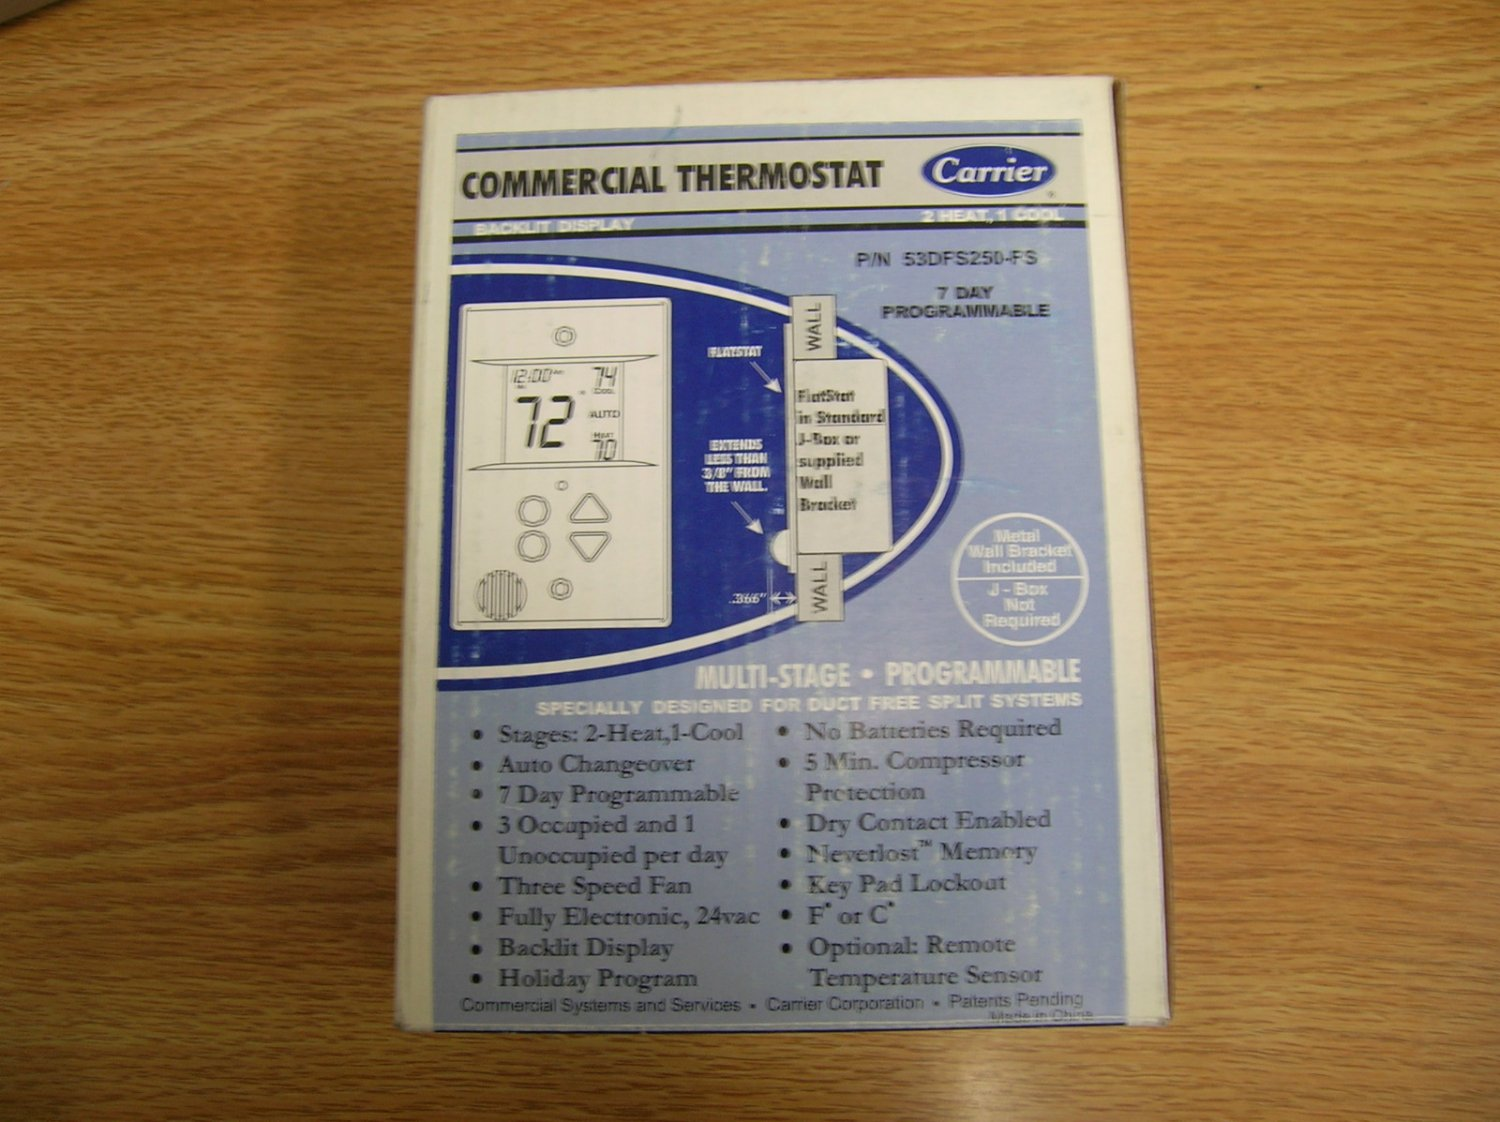 Carrier 53dfs250 Fs Commercial Thermostat Duct Free Split